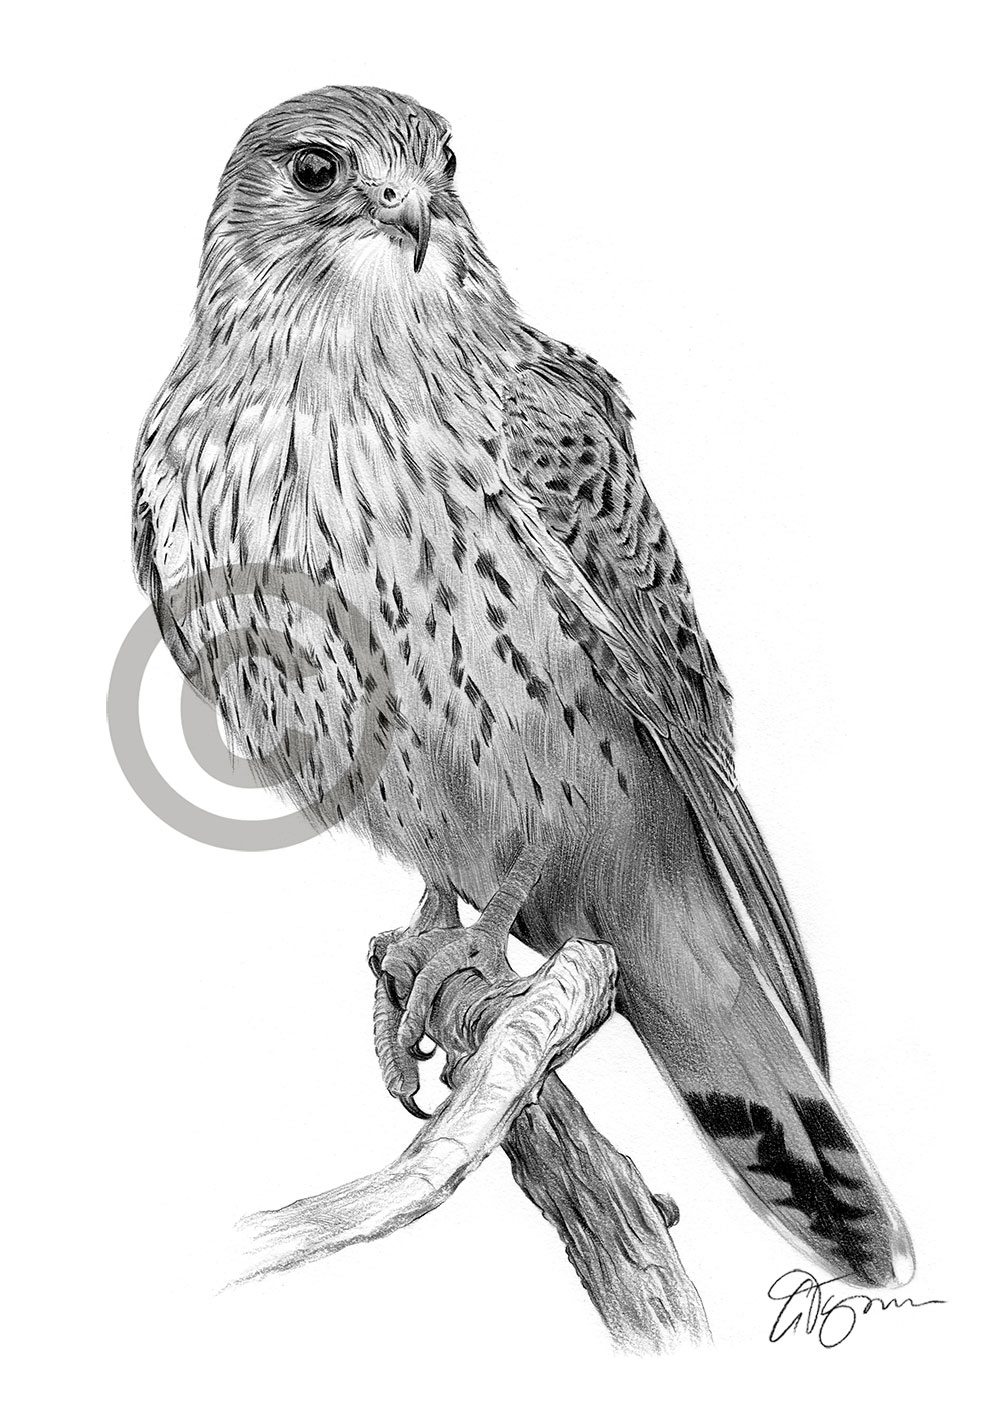 Details about kestrel pencil drawing art print a4 a3 signed artwork bird of prey